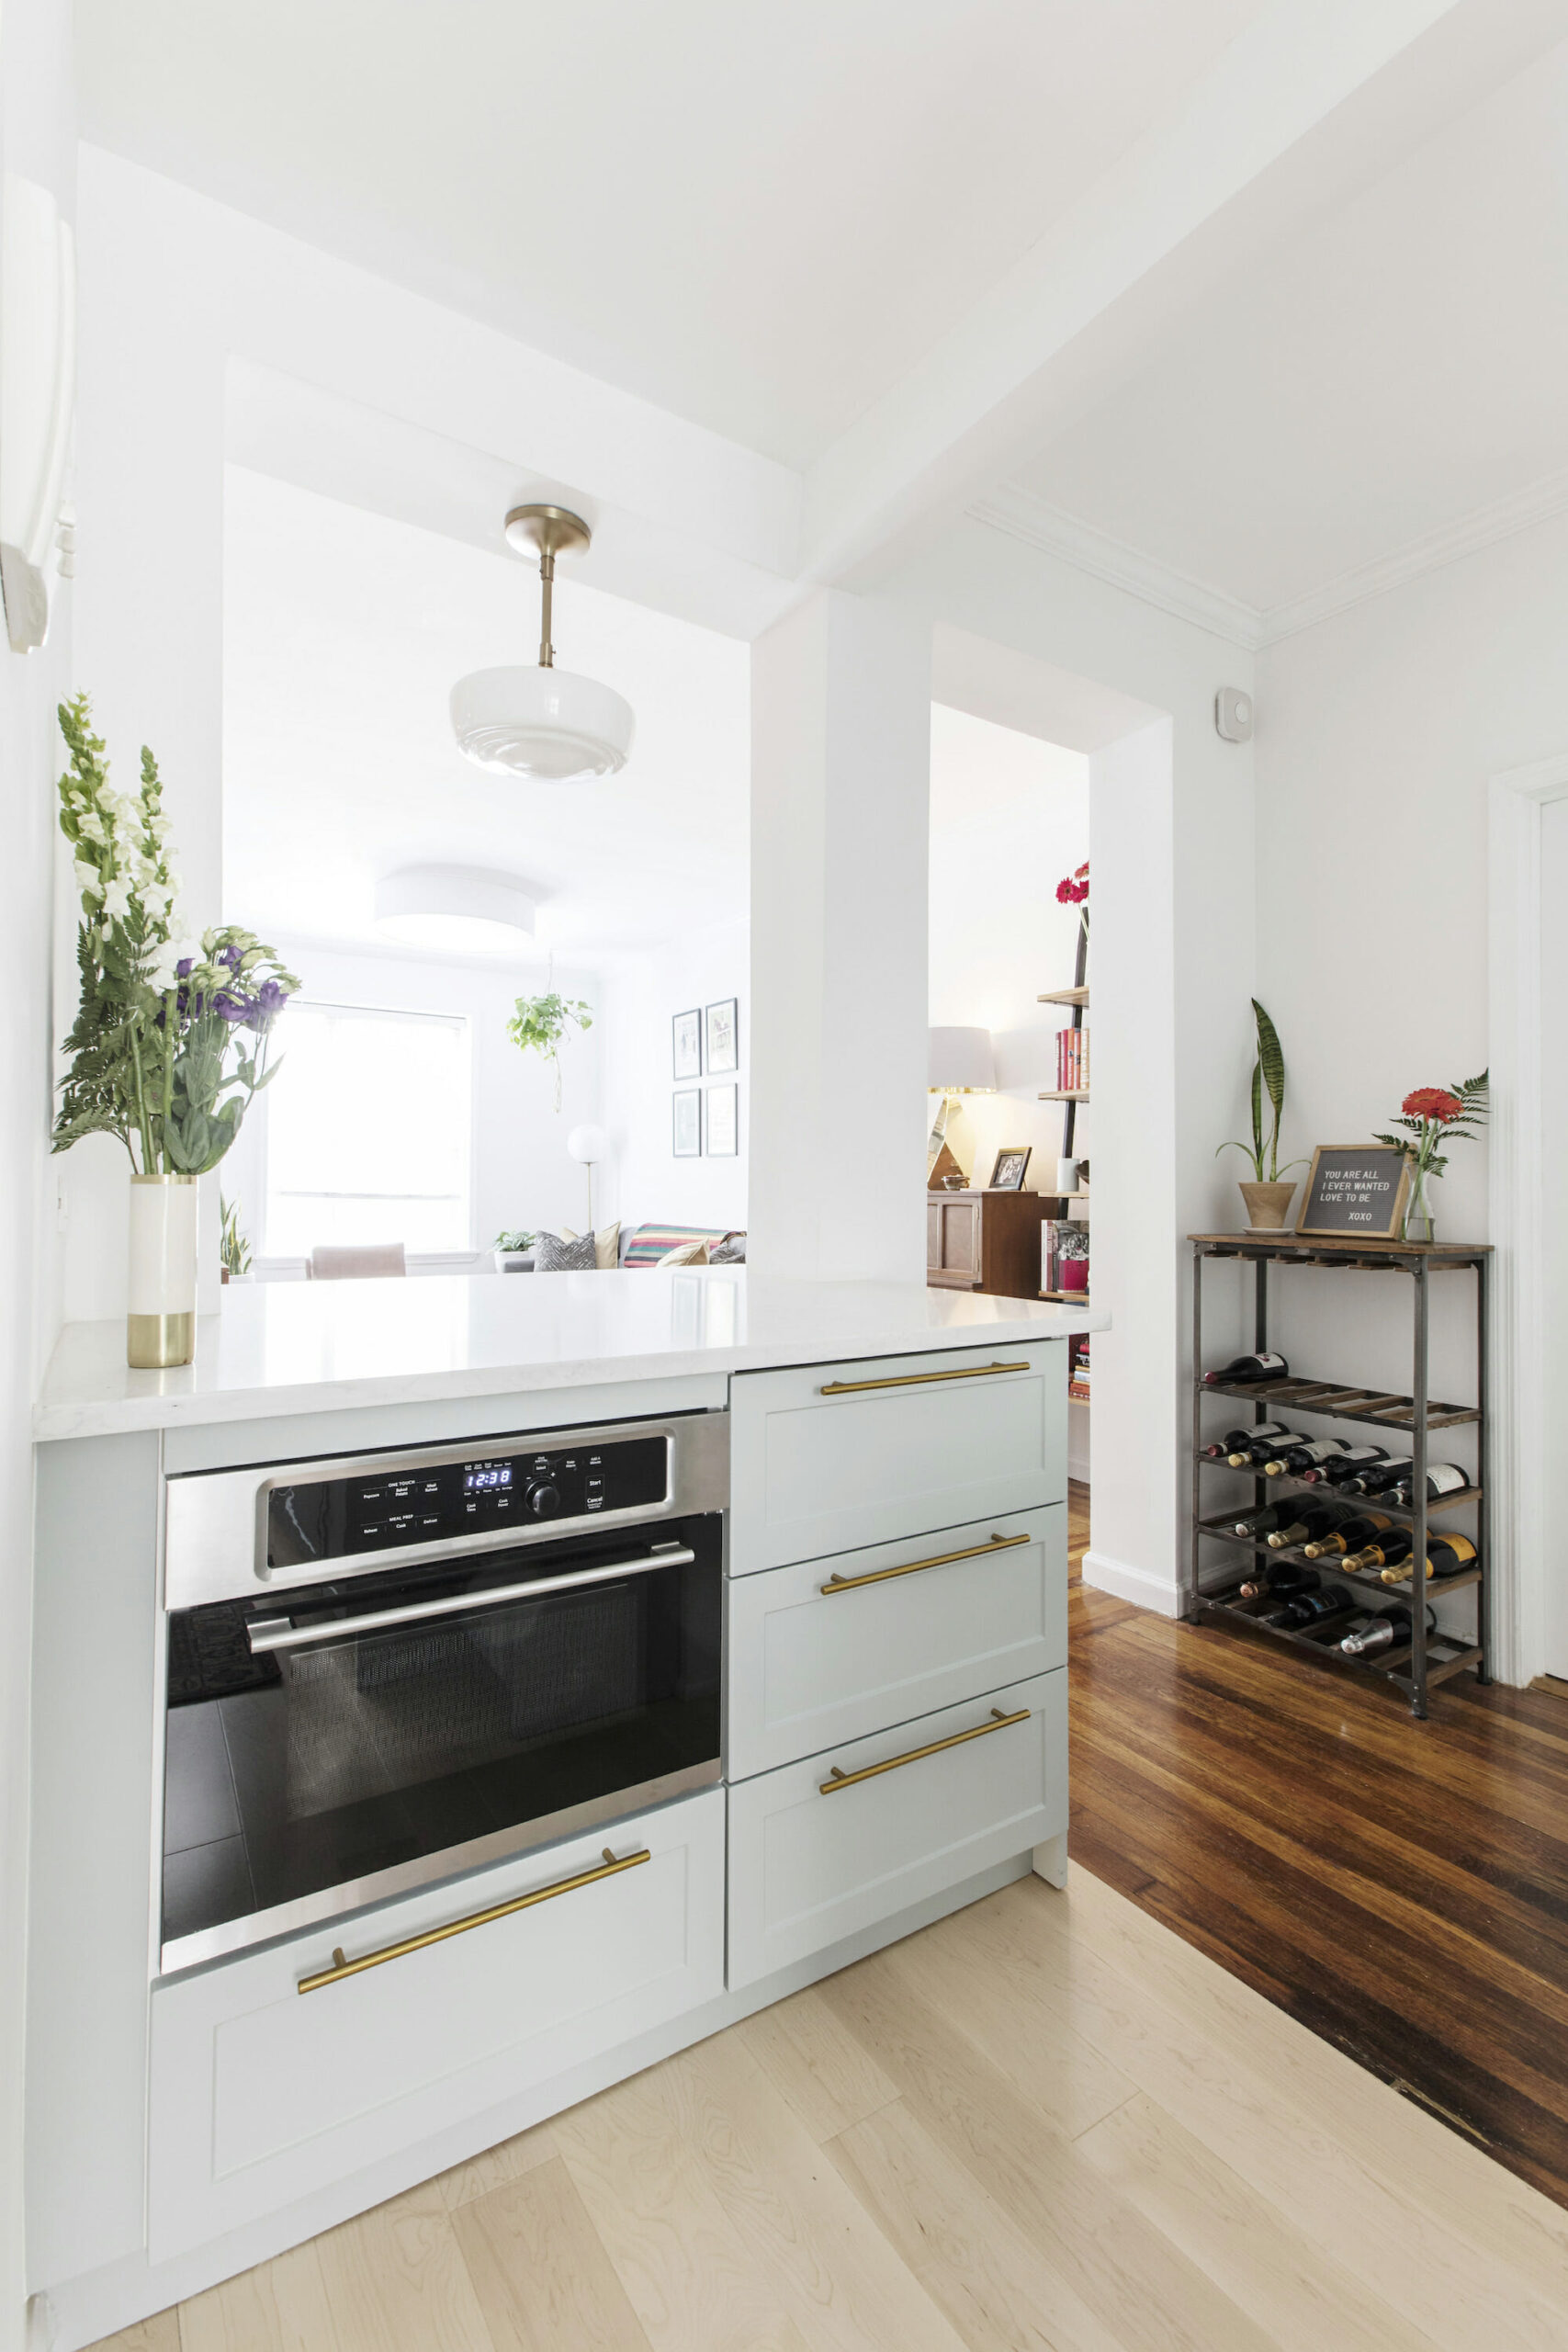 Image of a built-in oven in a renovated kitchen